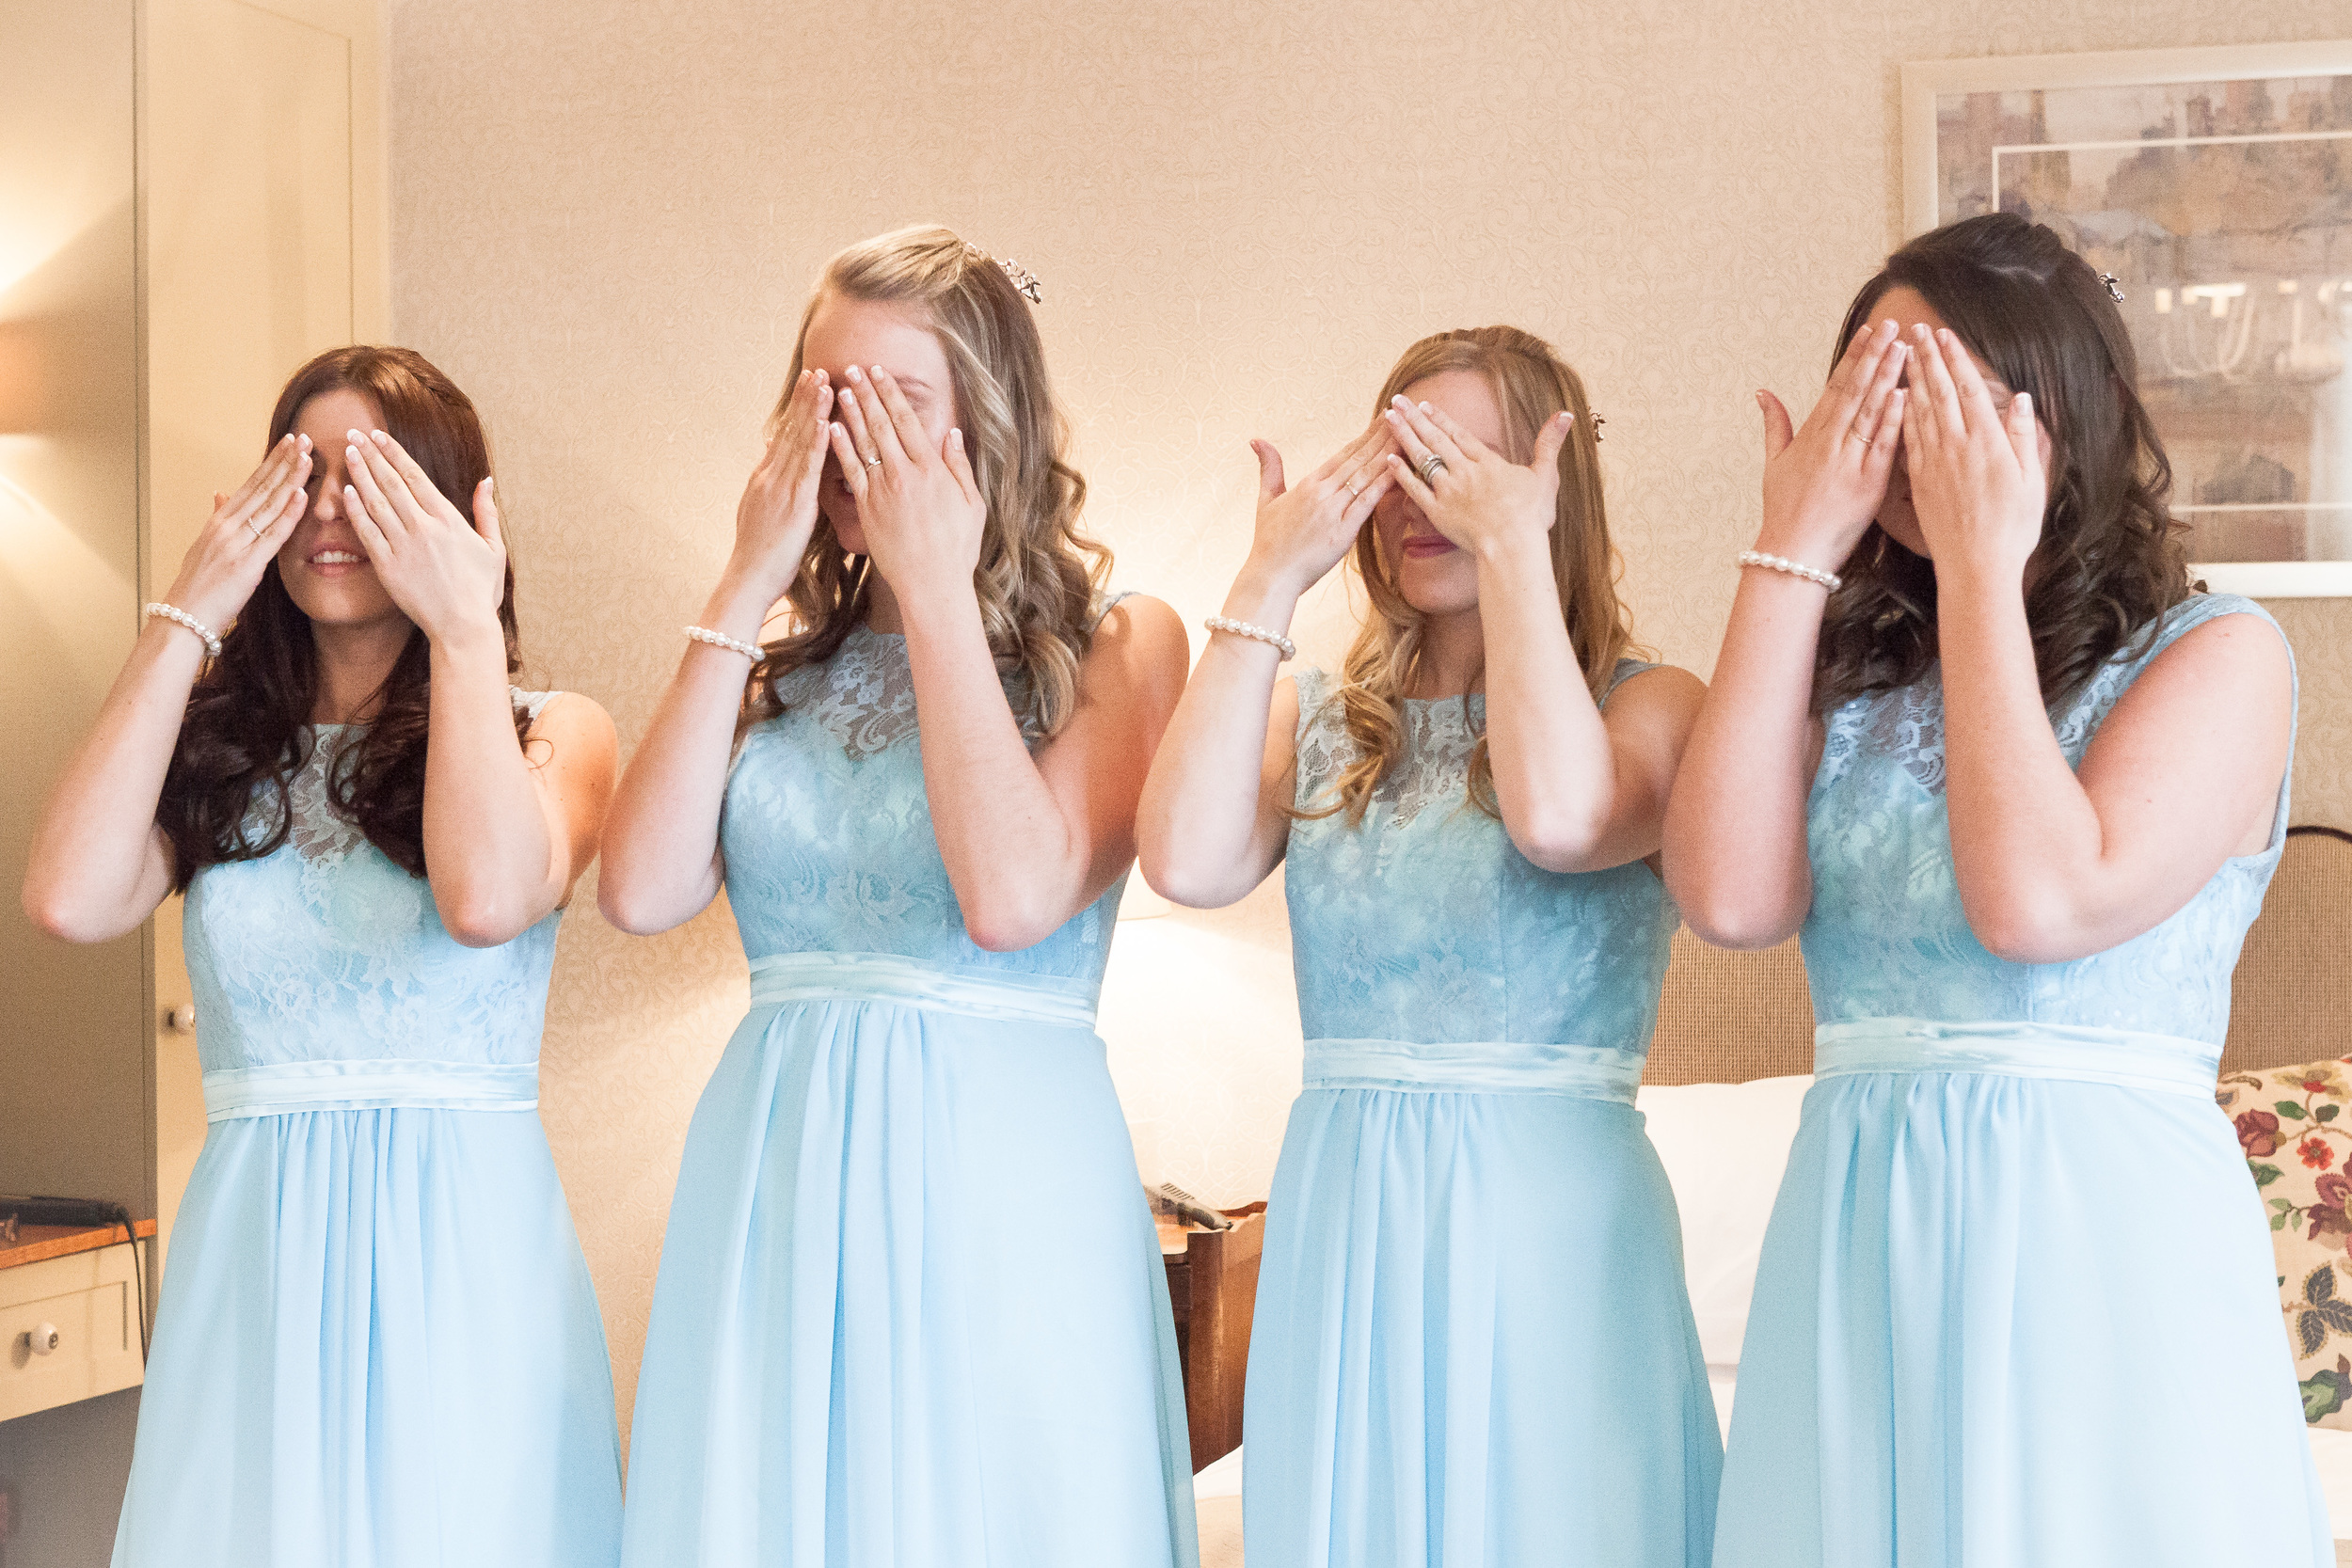 All the fun and excitement of the bridal preparations are caught easily with the 24-70mm lens.